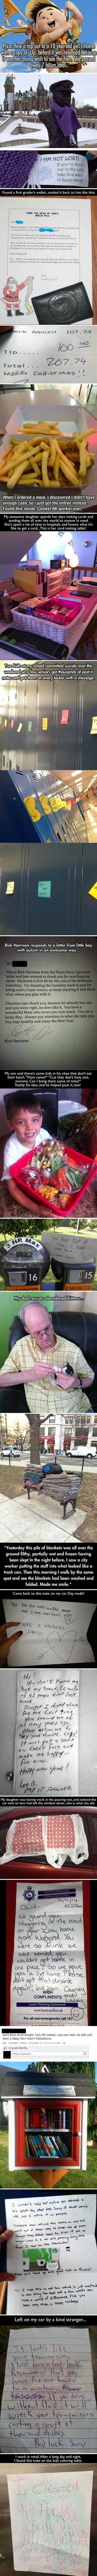 Here are 20 random acts of kindness that will restore your faith in humanity.